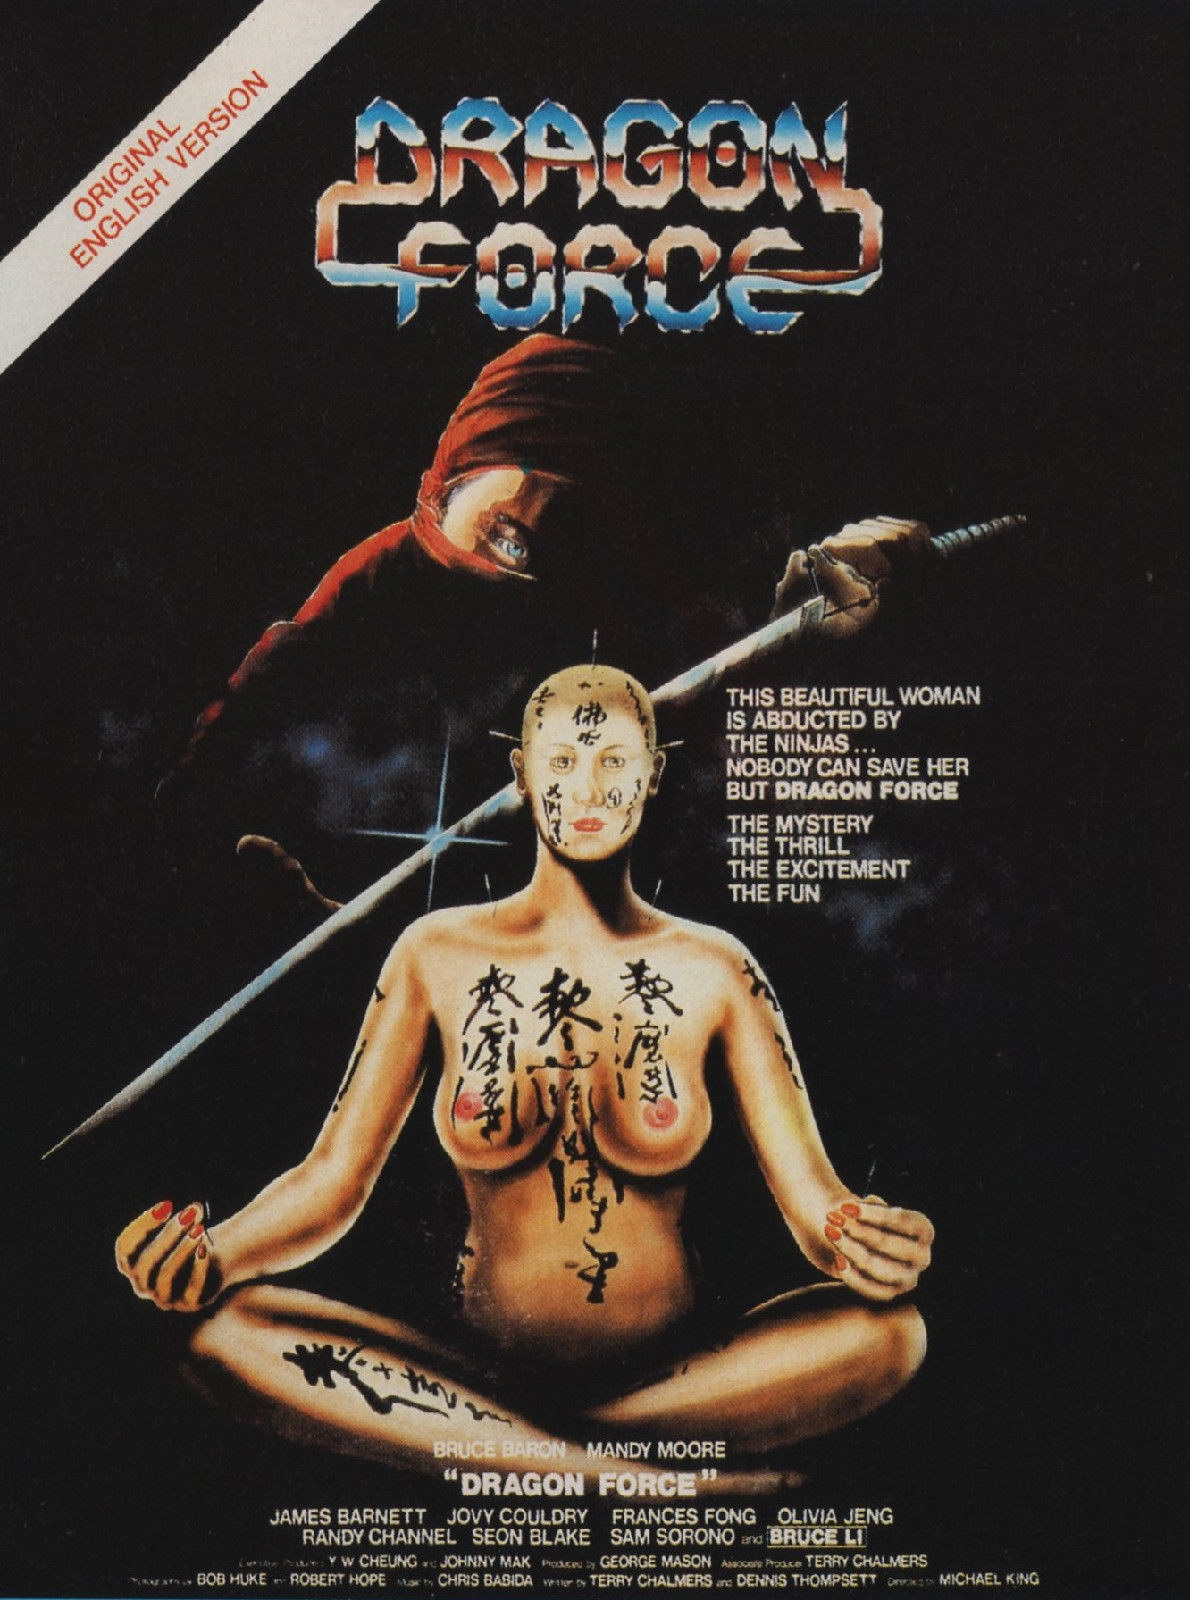 74177 DRAGON FORCE Movie Rare Kung-Fu Wall Print Poster Affiche